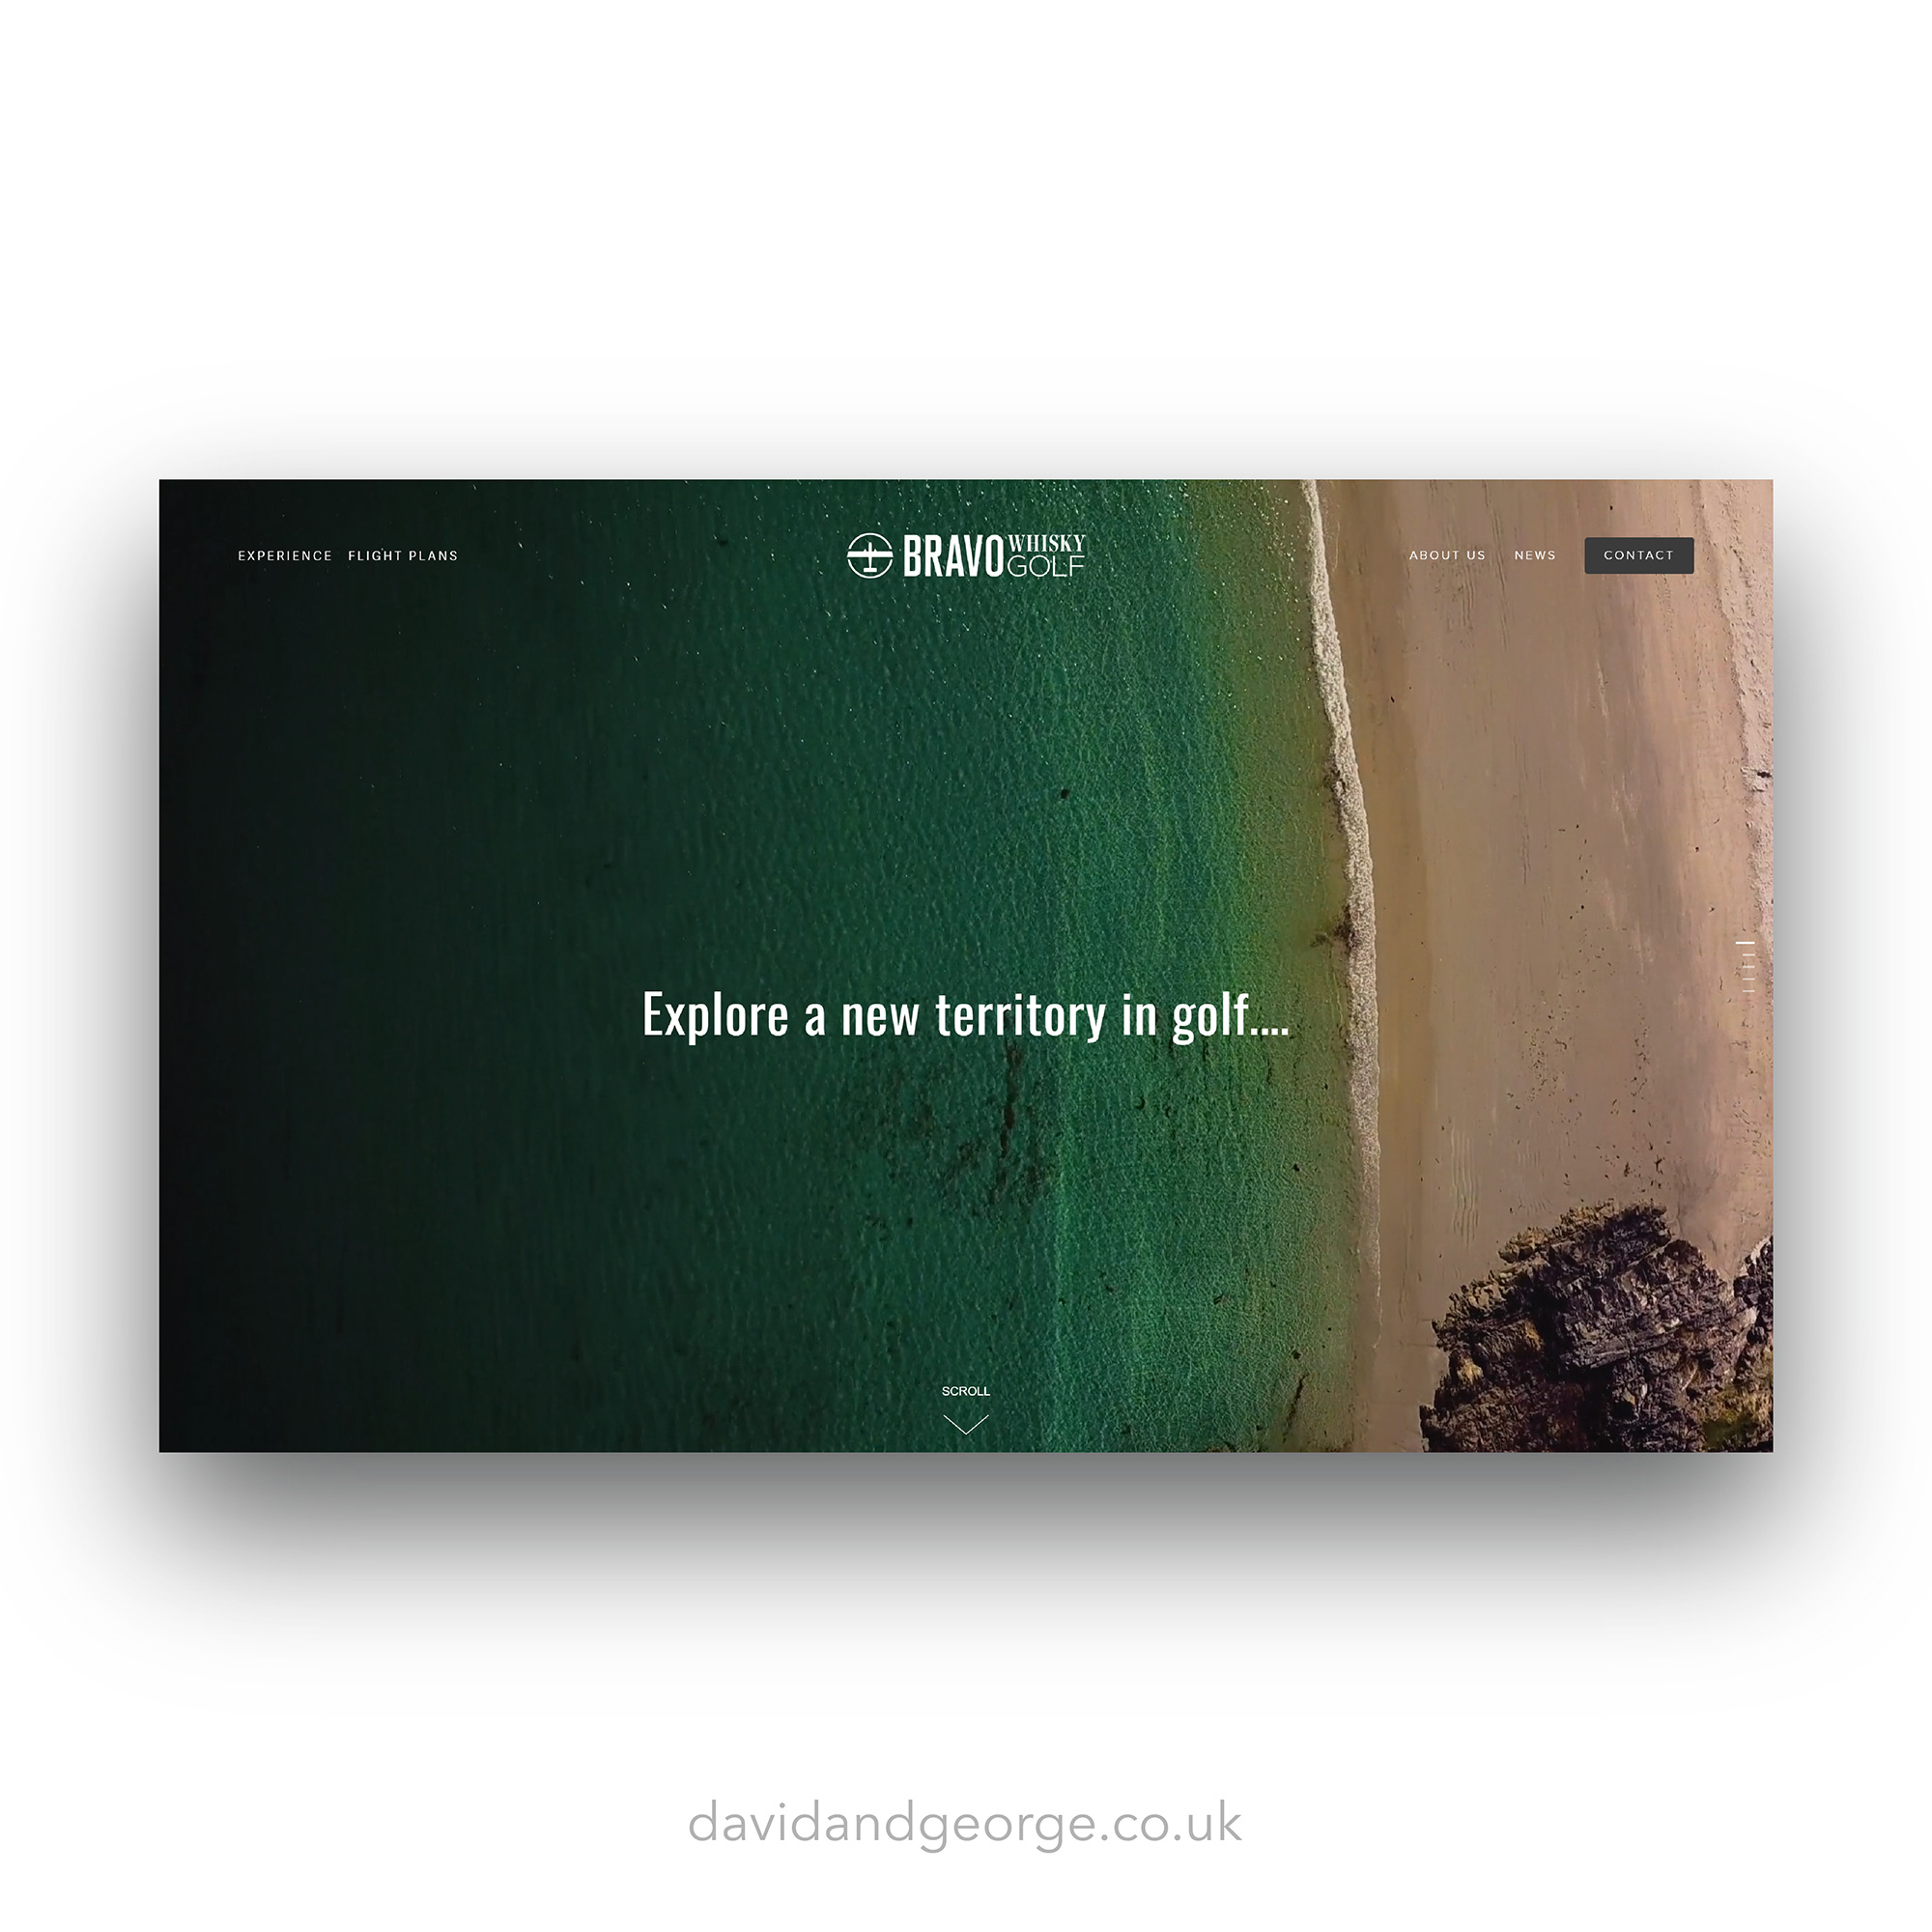 squarespace-website-design-london-edinburgh-uk-david-and-george-bravo-whisky-golf-tourism-website.jpg